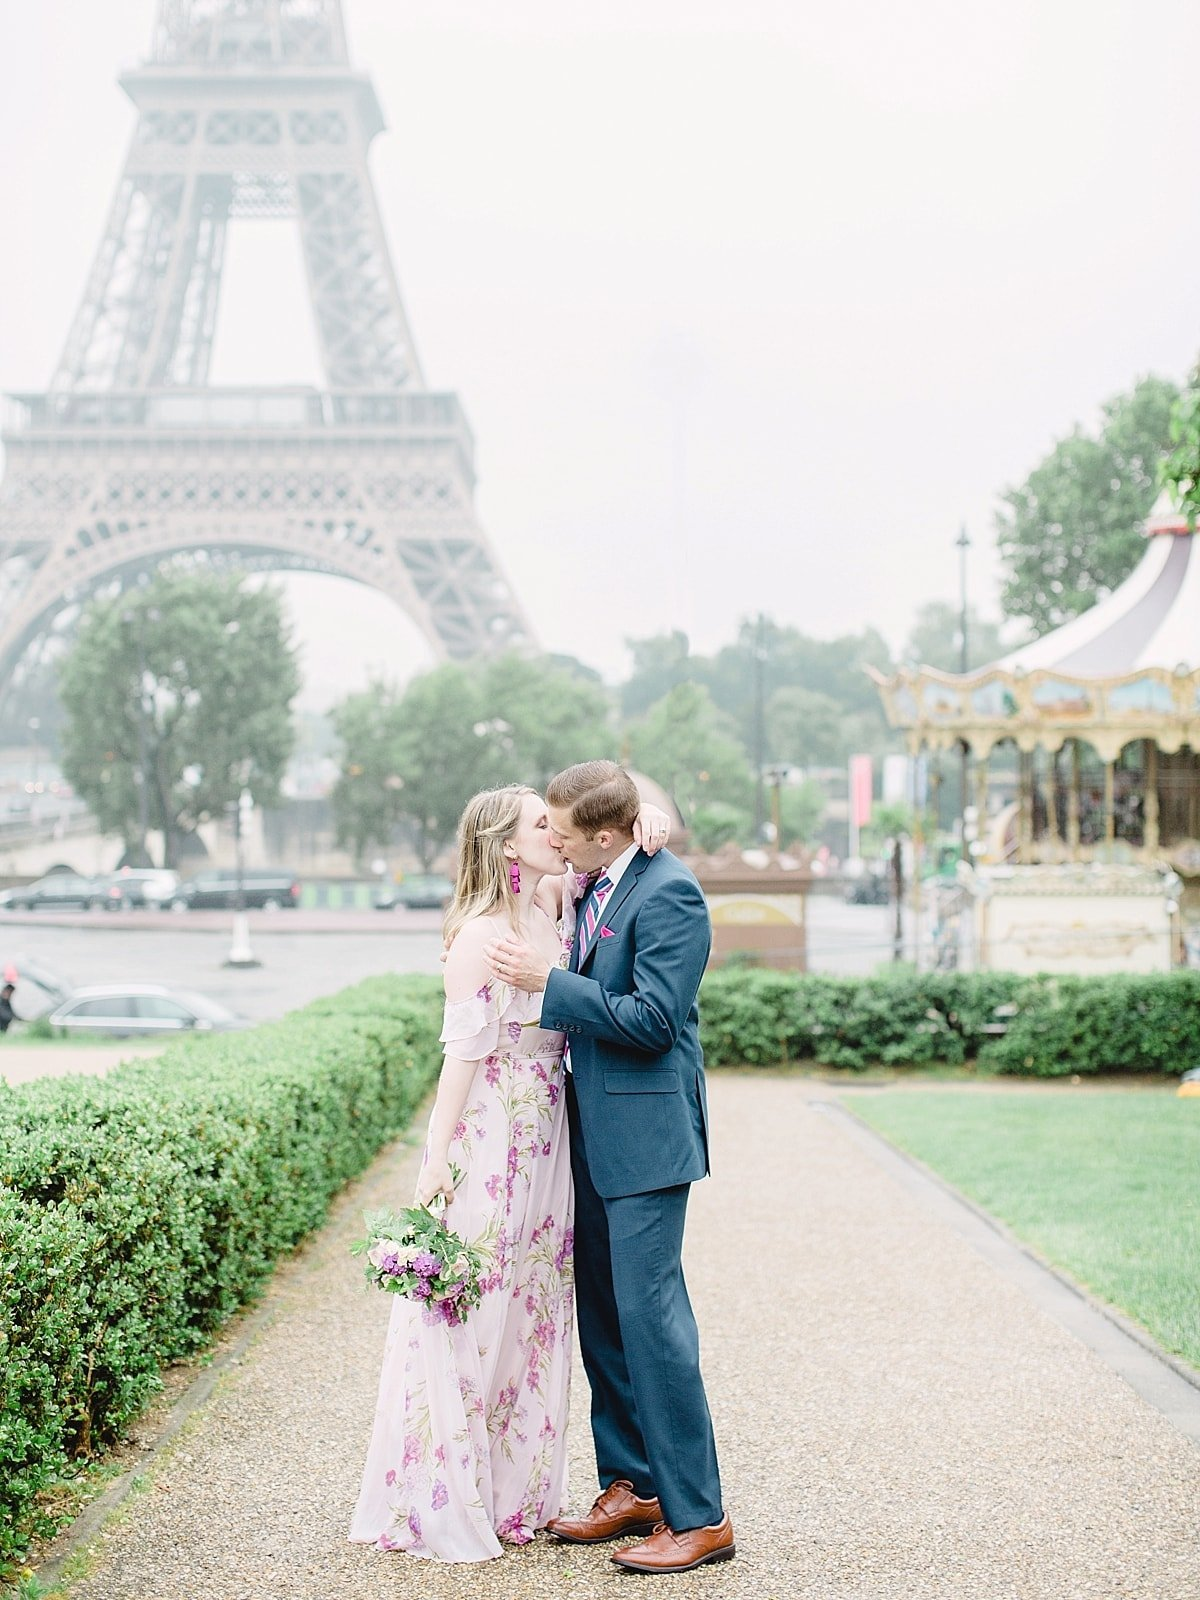 paris-photo-session-anniversary-alicia-yarrish-photography_27